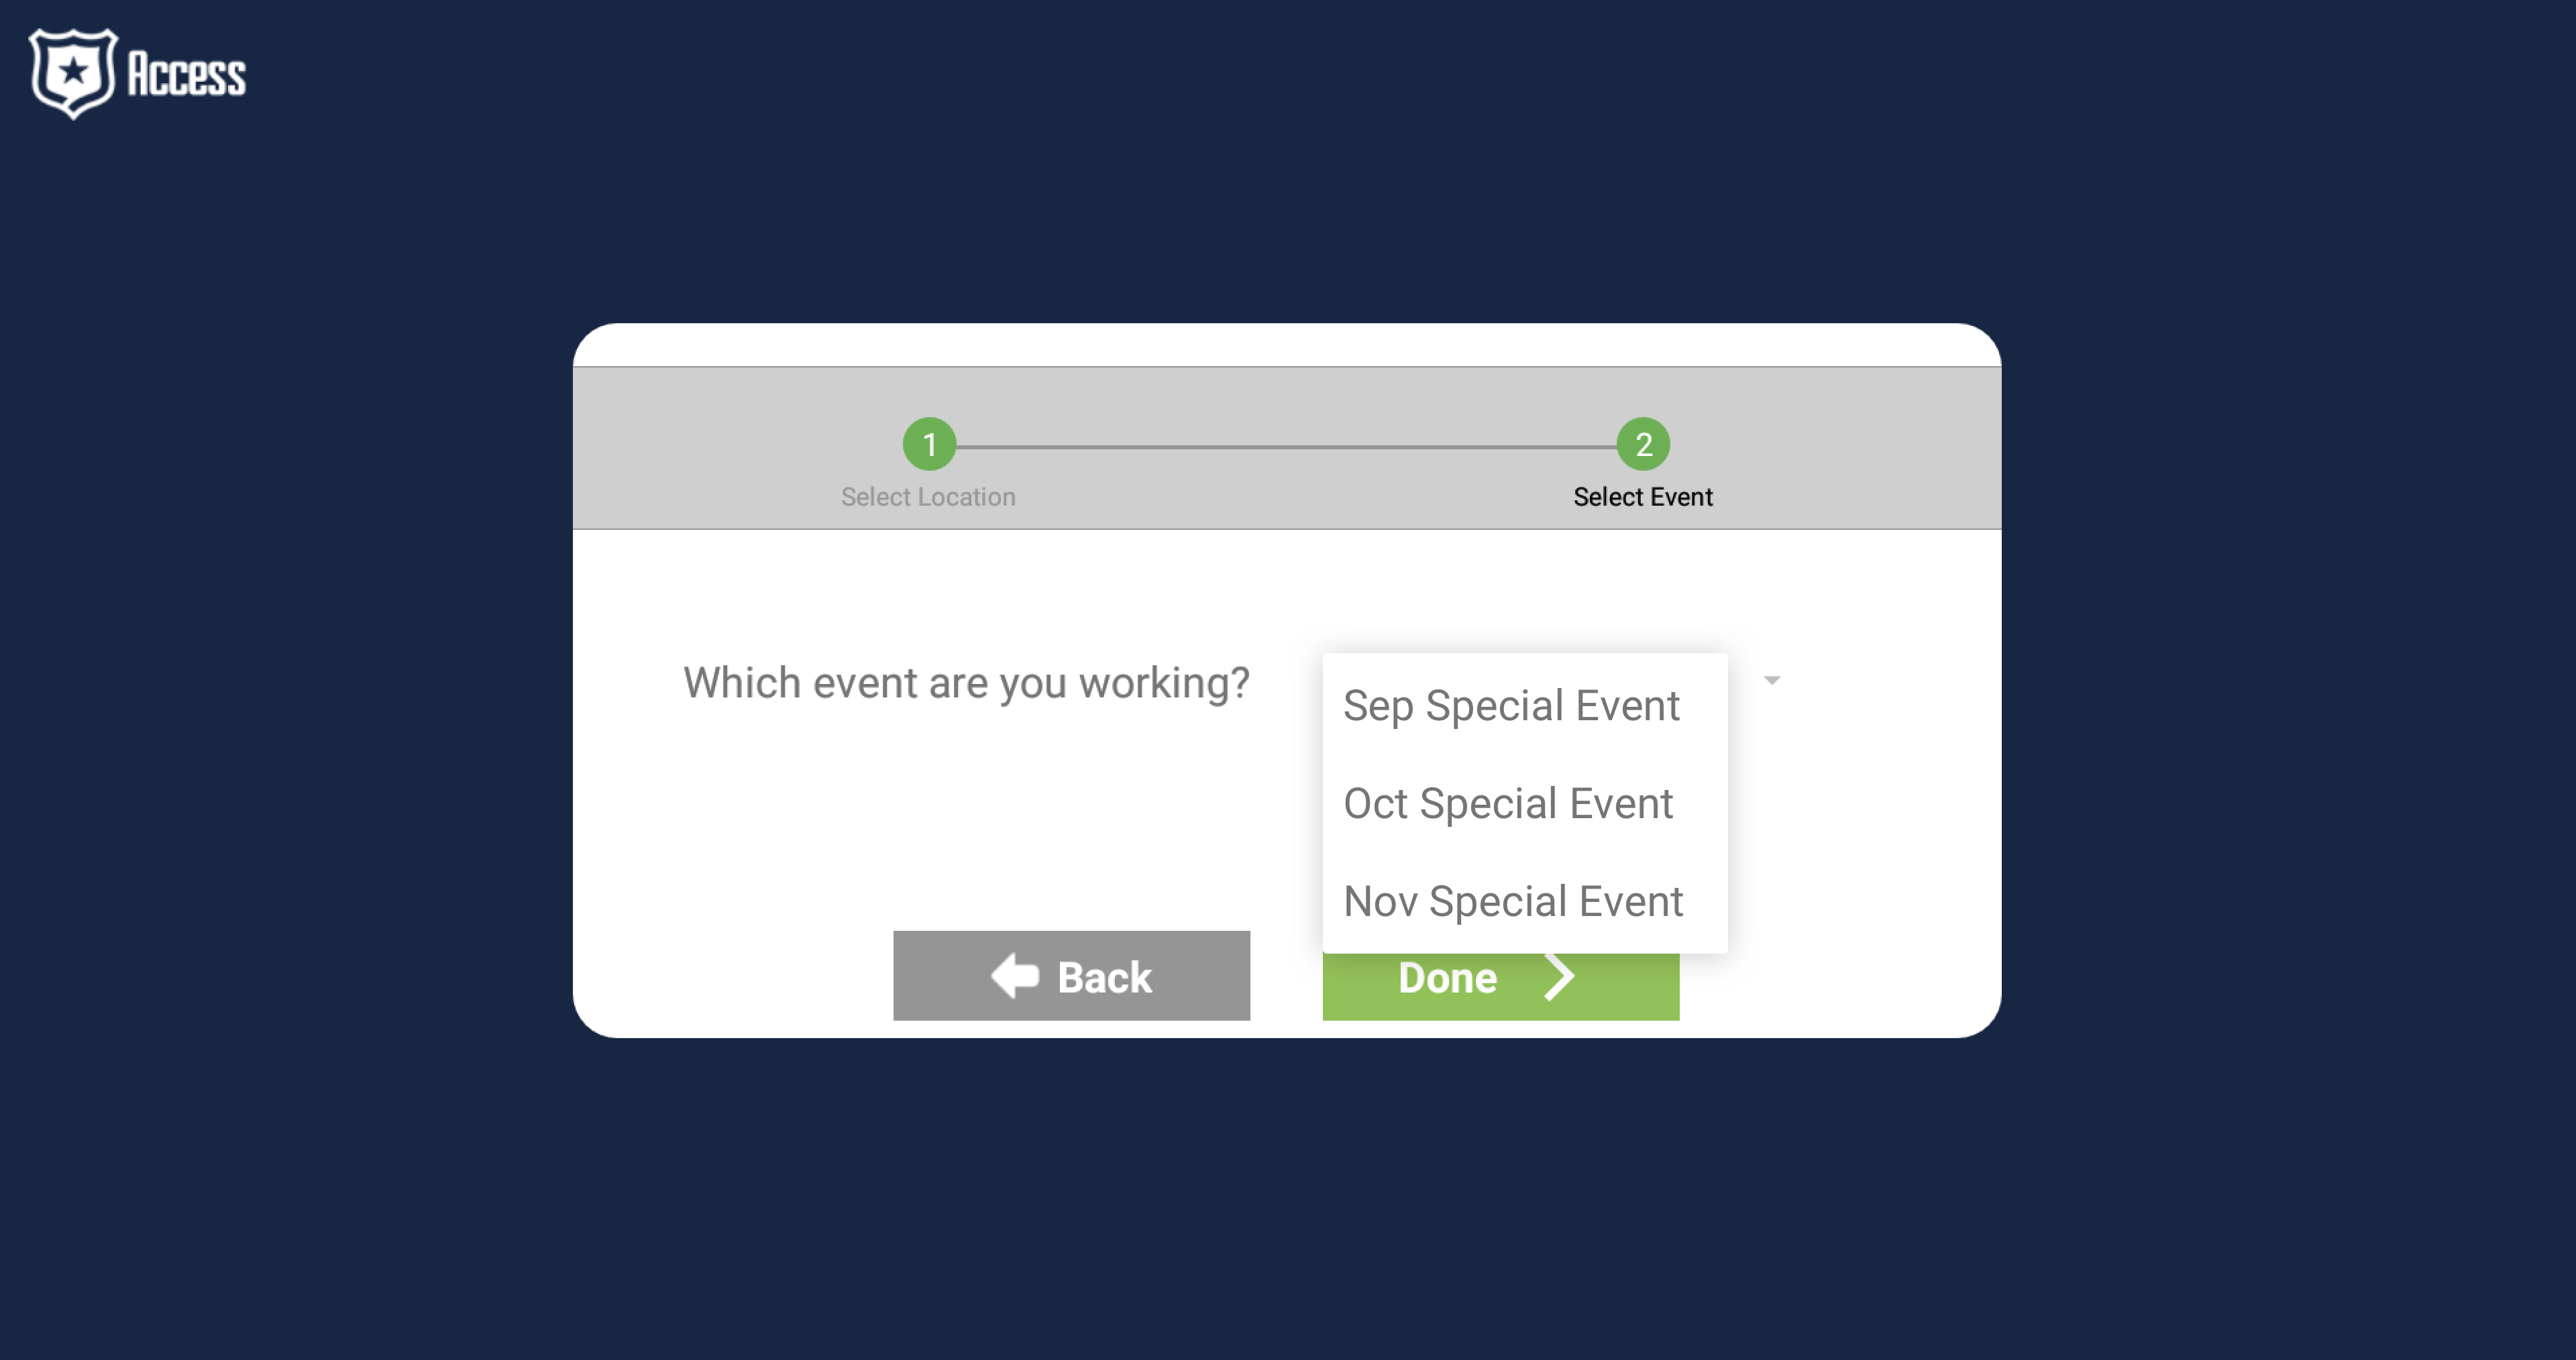 access_event-dropdown.png